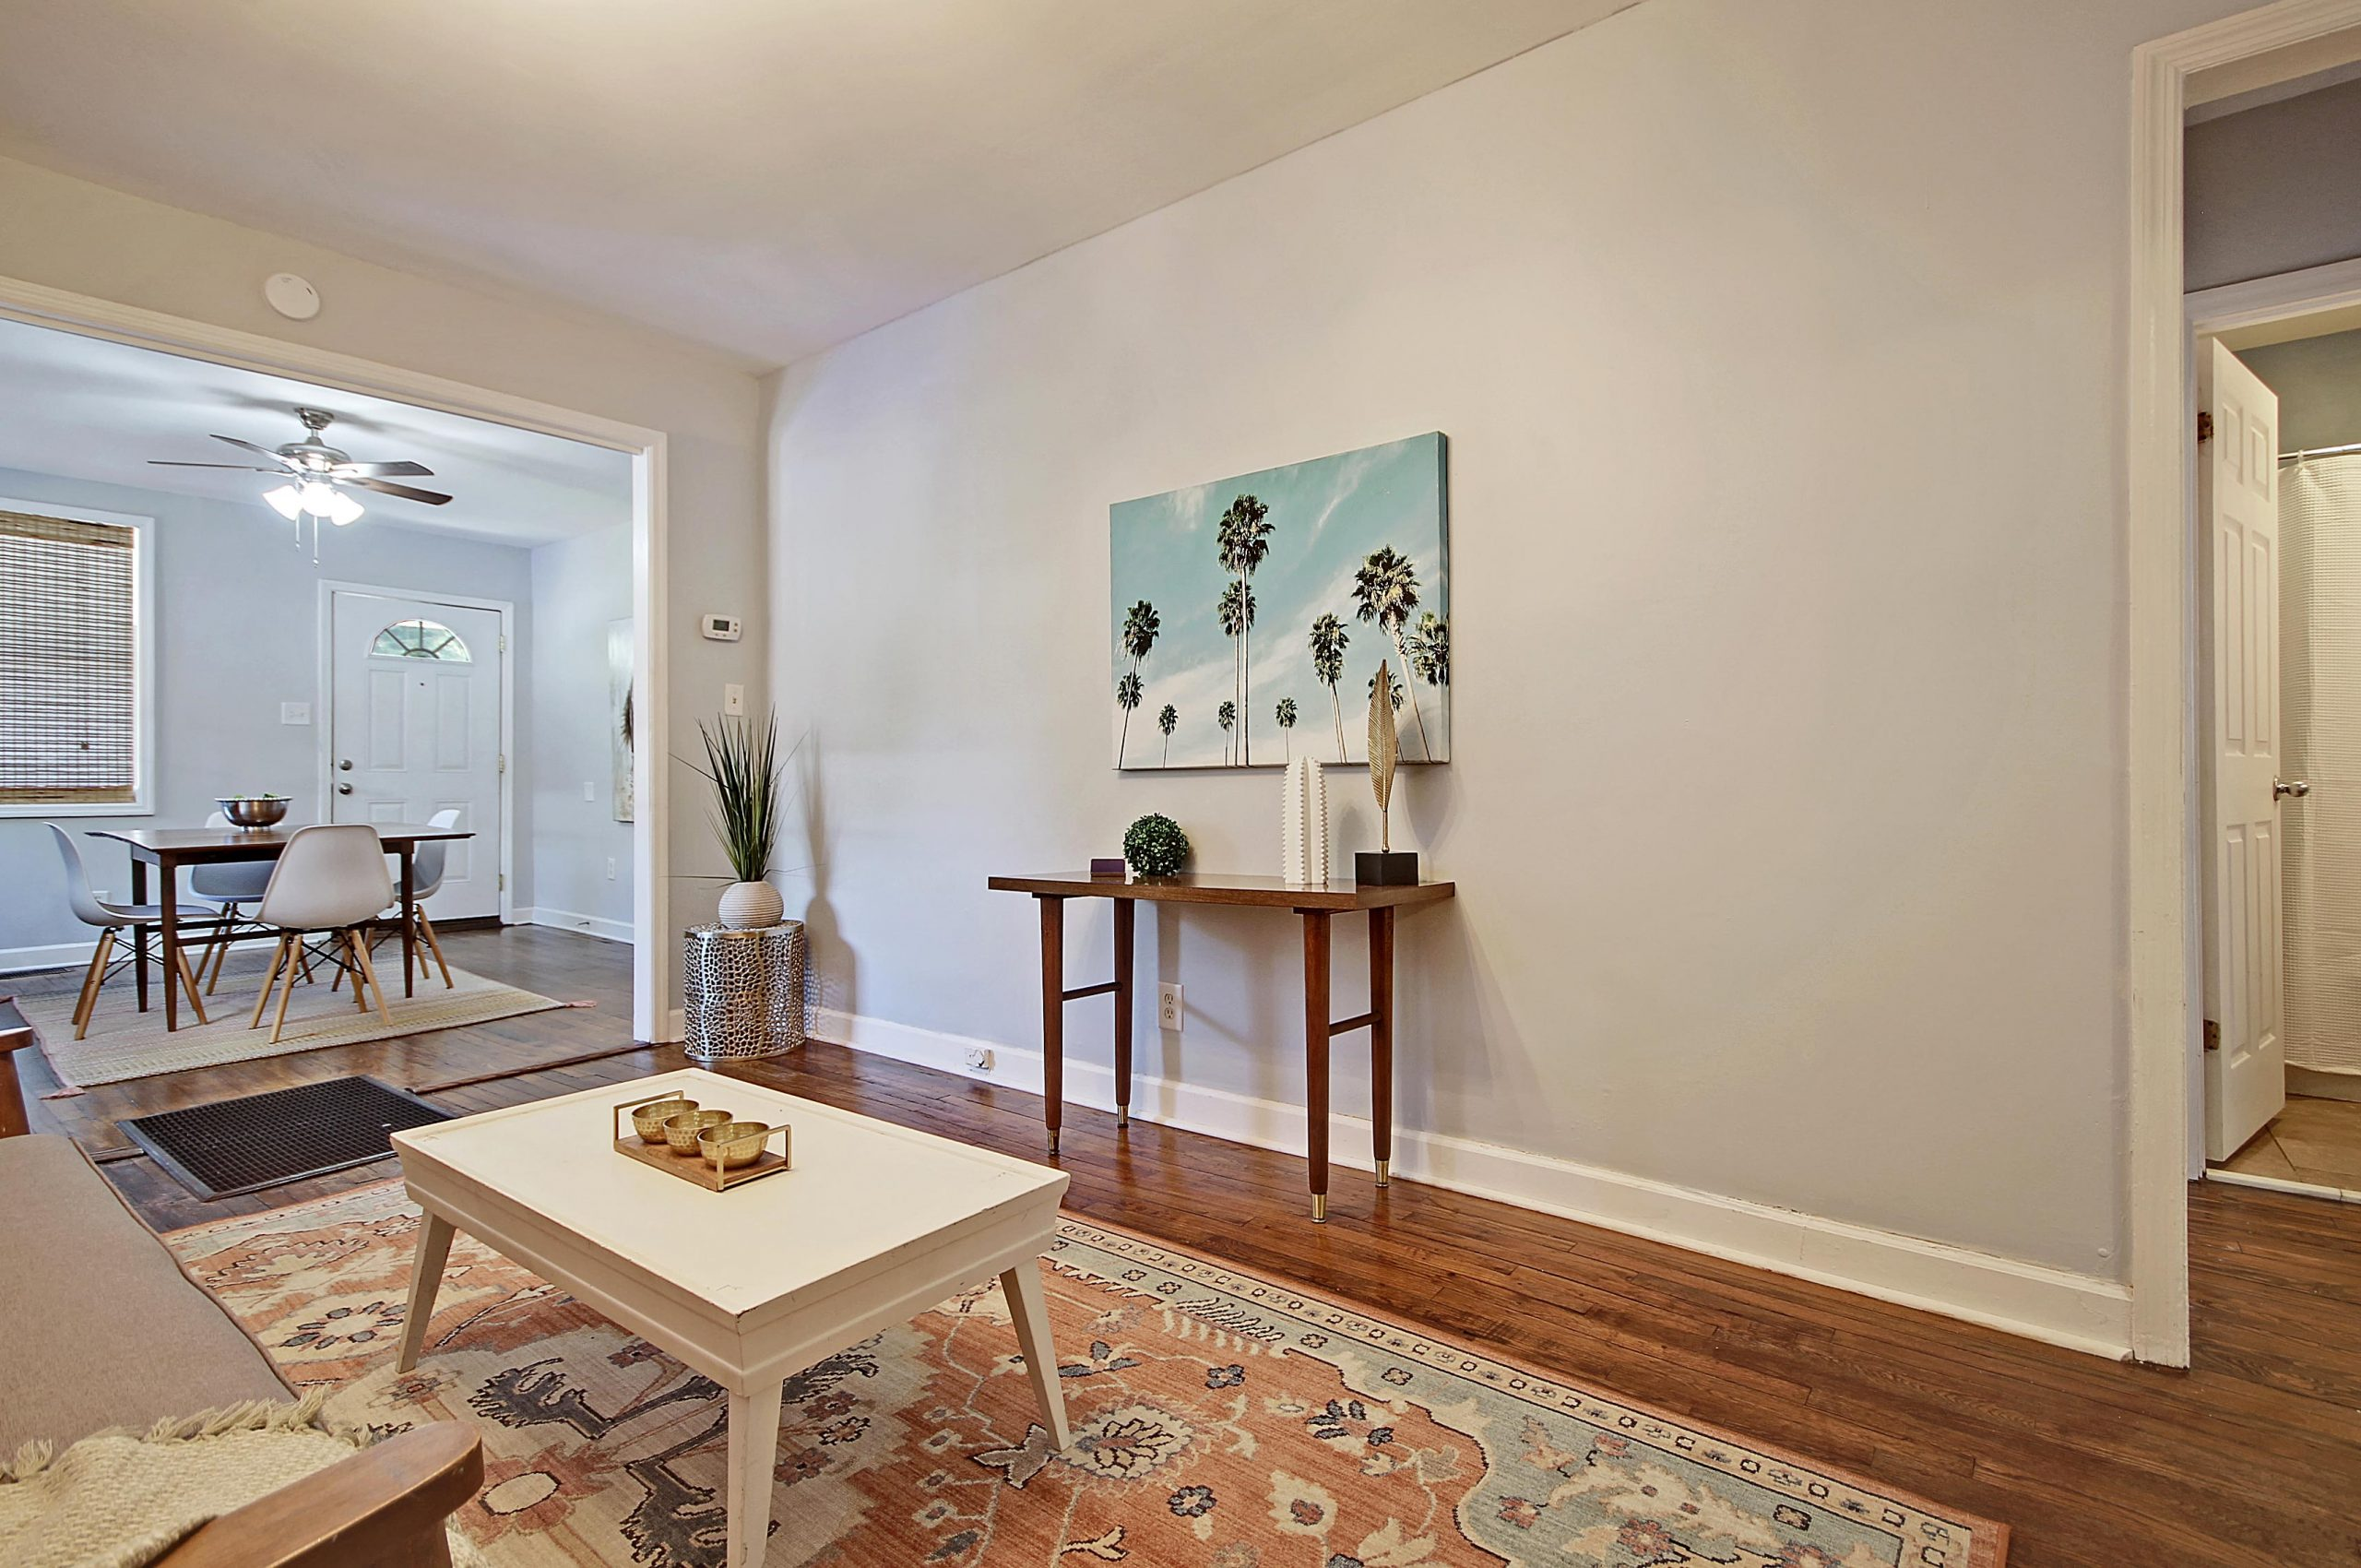 1083 Bexley St. - Park Circle Home for Sale - Exclusively listed by Real Deal with Neil